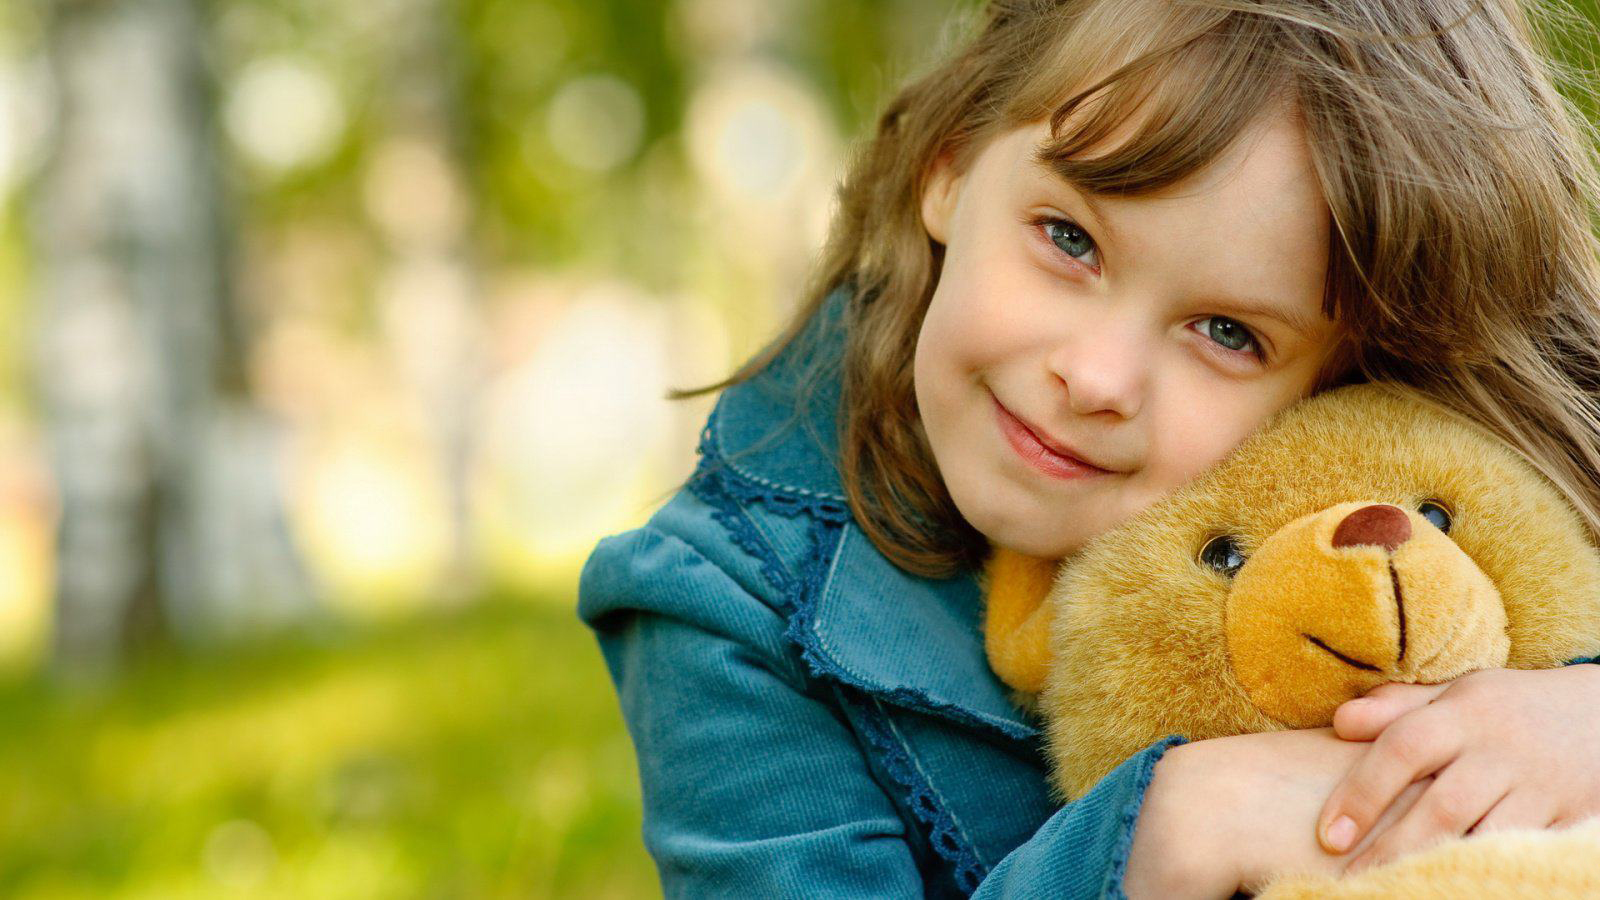 Cute Baby Wallpapers 1600x900